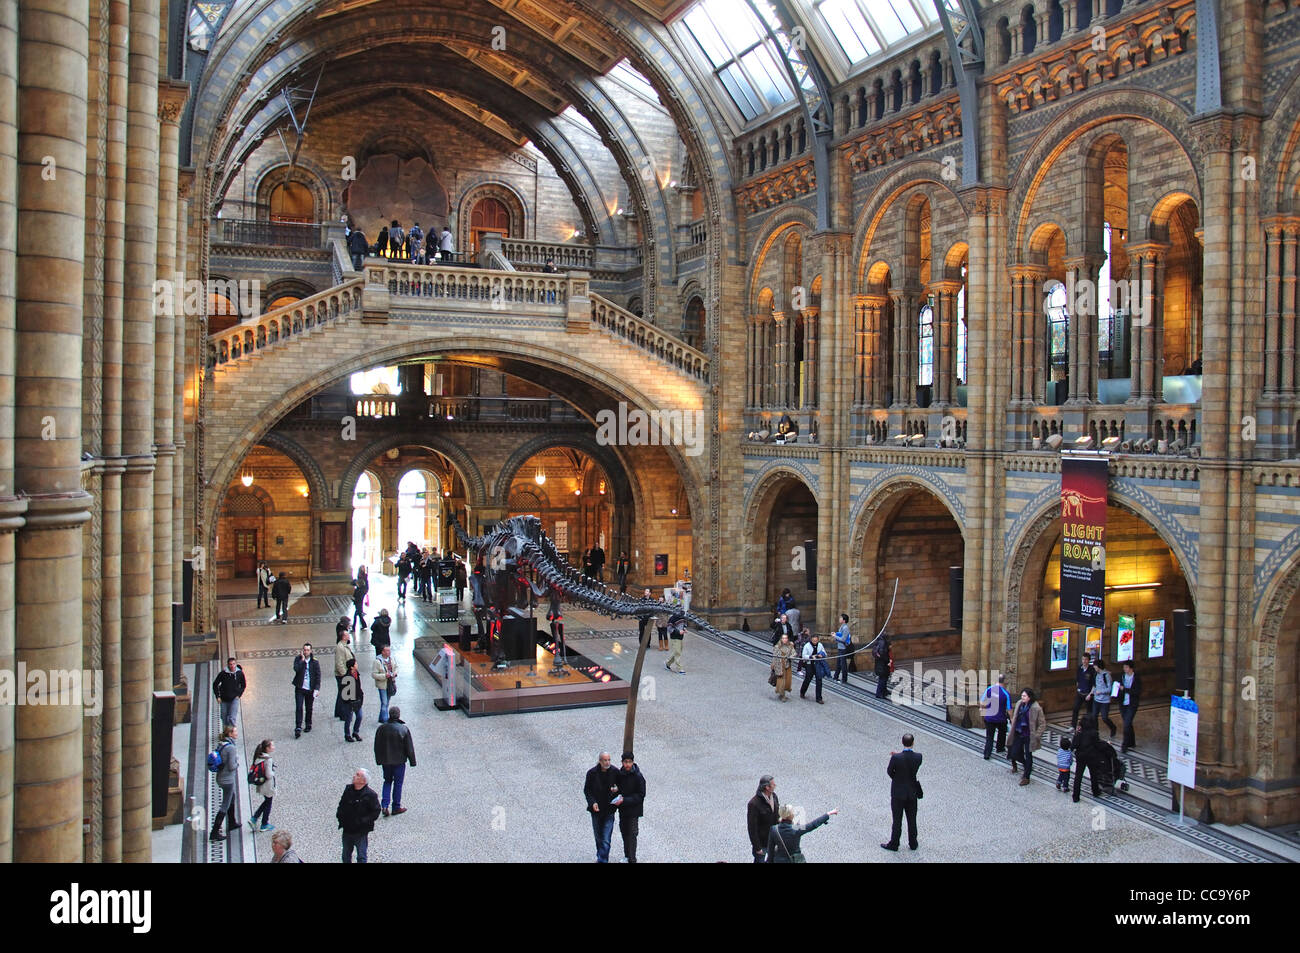 Dinosaur skeleton in Central Hall at Natural History Museum, Cromwell Road, Kensington, Greater London, England, - Stock Image